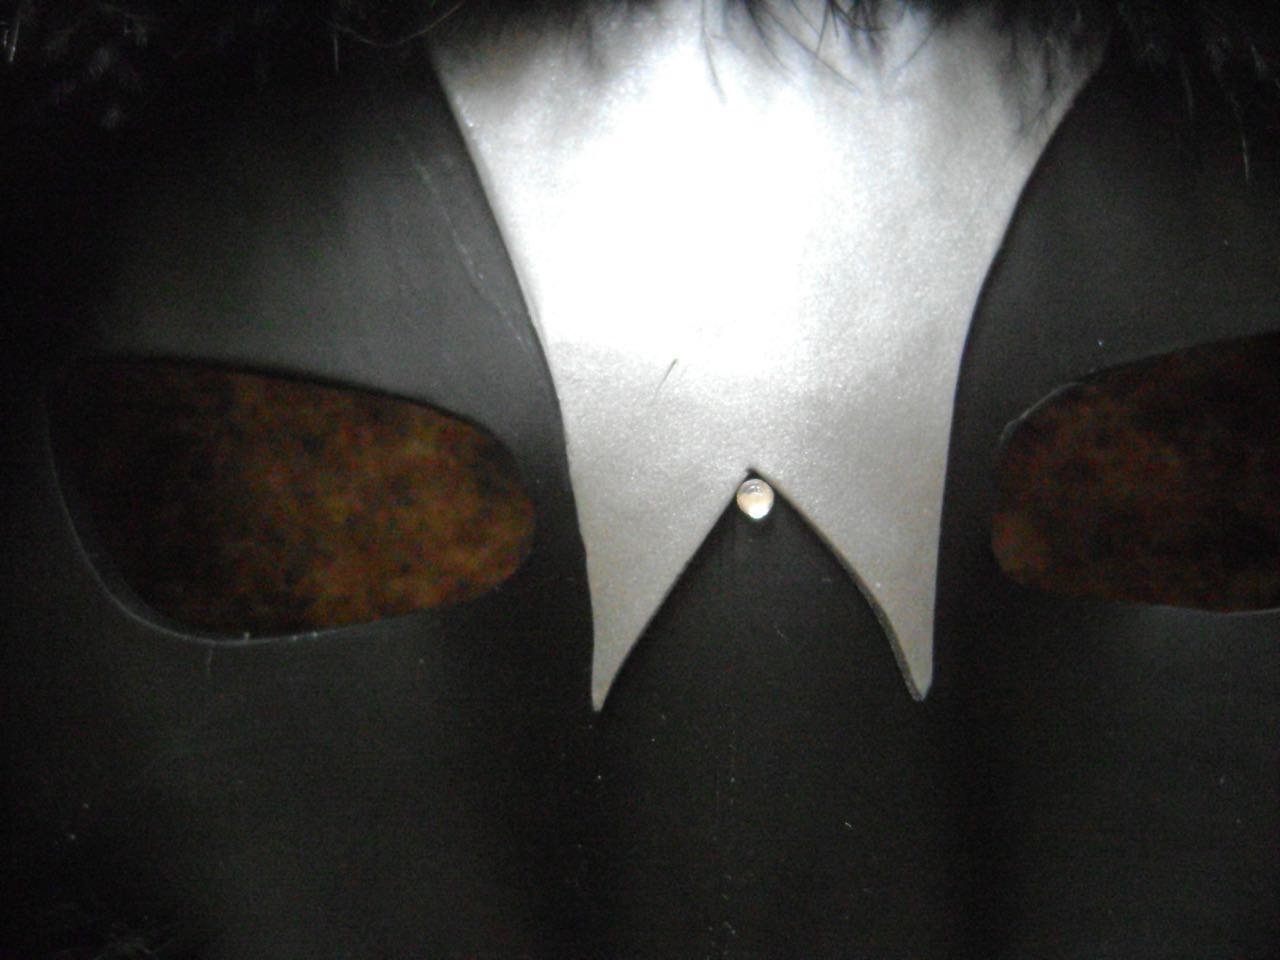 """step 12 - Using a hot fix rhinestone applicator, apply the small rhinestones starting at the center point of the silver clay. Add two below it, then keep adding rows following the design in the photo. The last rhinestone should be about .50"""" up from the bottom of the mask. Add rhinestones across the tops of the eyes."""